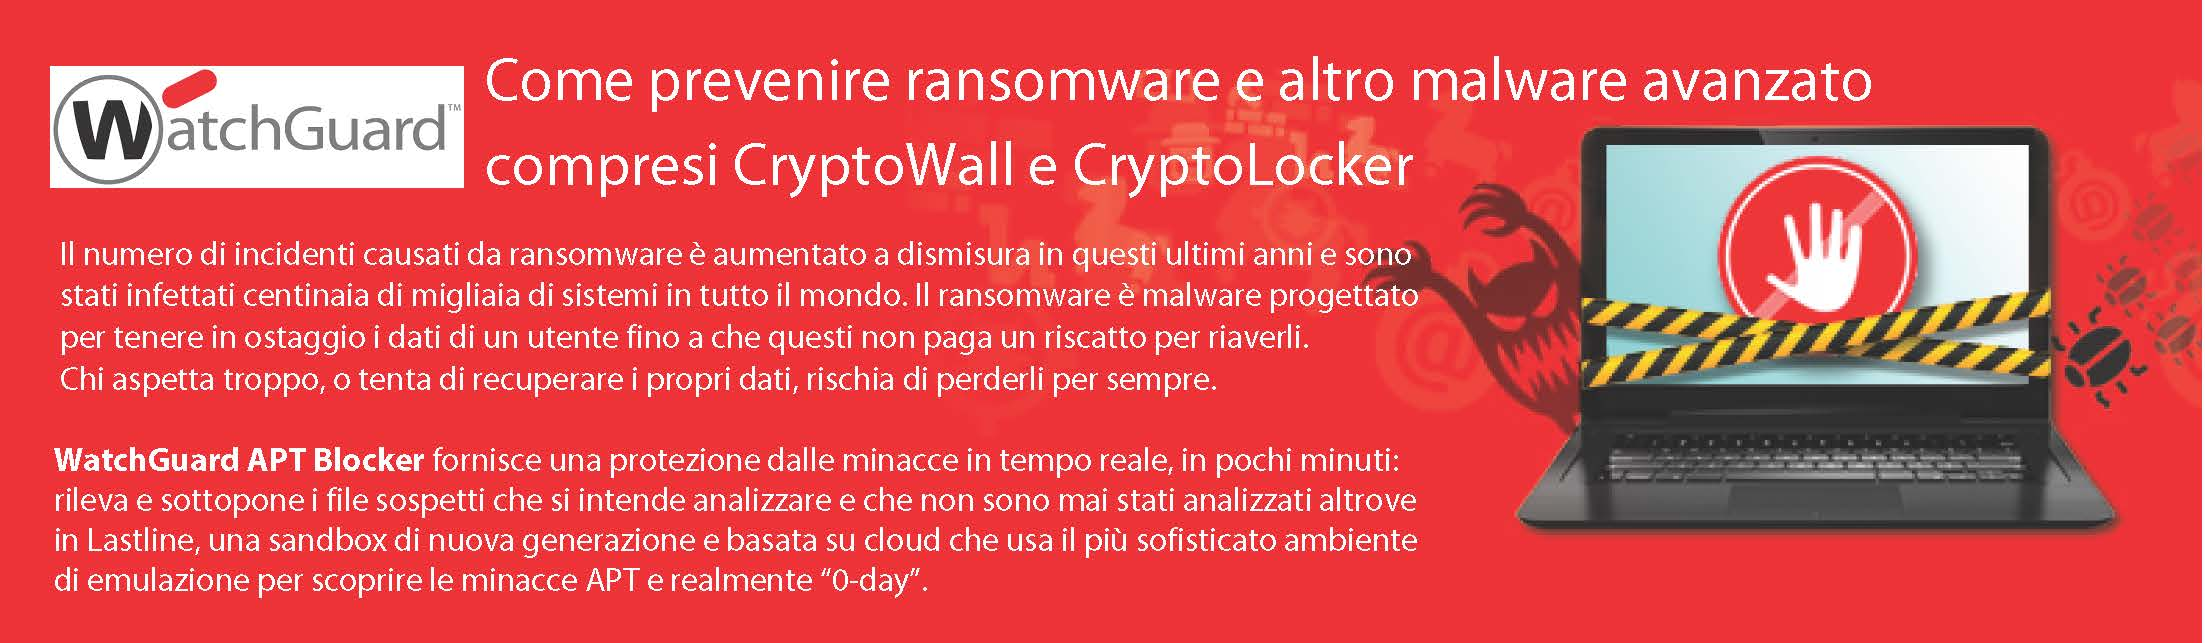 CryptoBlocker Watchguard